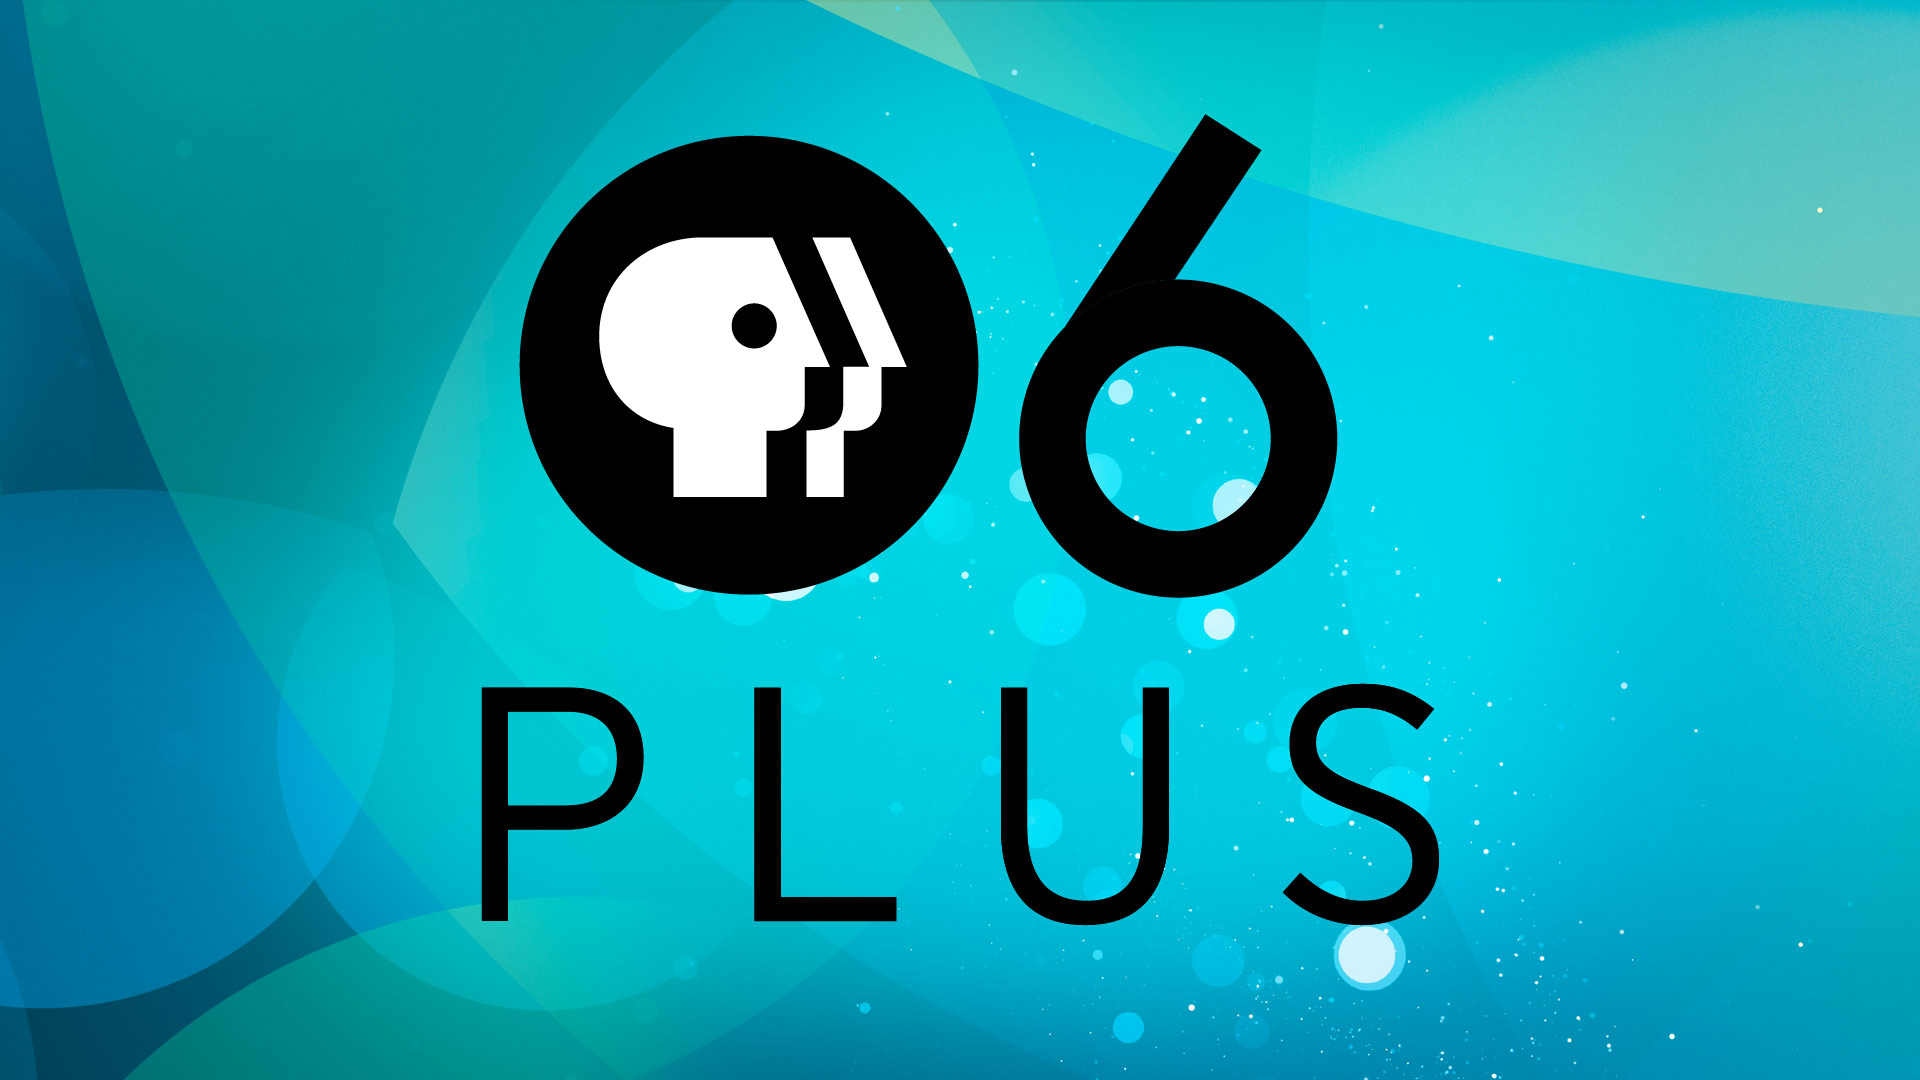 PBS 6 PLUS showcases the best of AZPM's programming across genres, including drama, science, history, the arts and more.